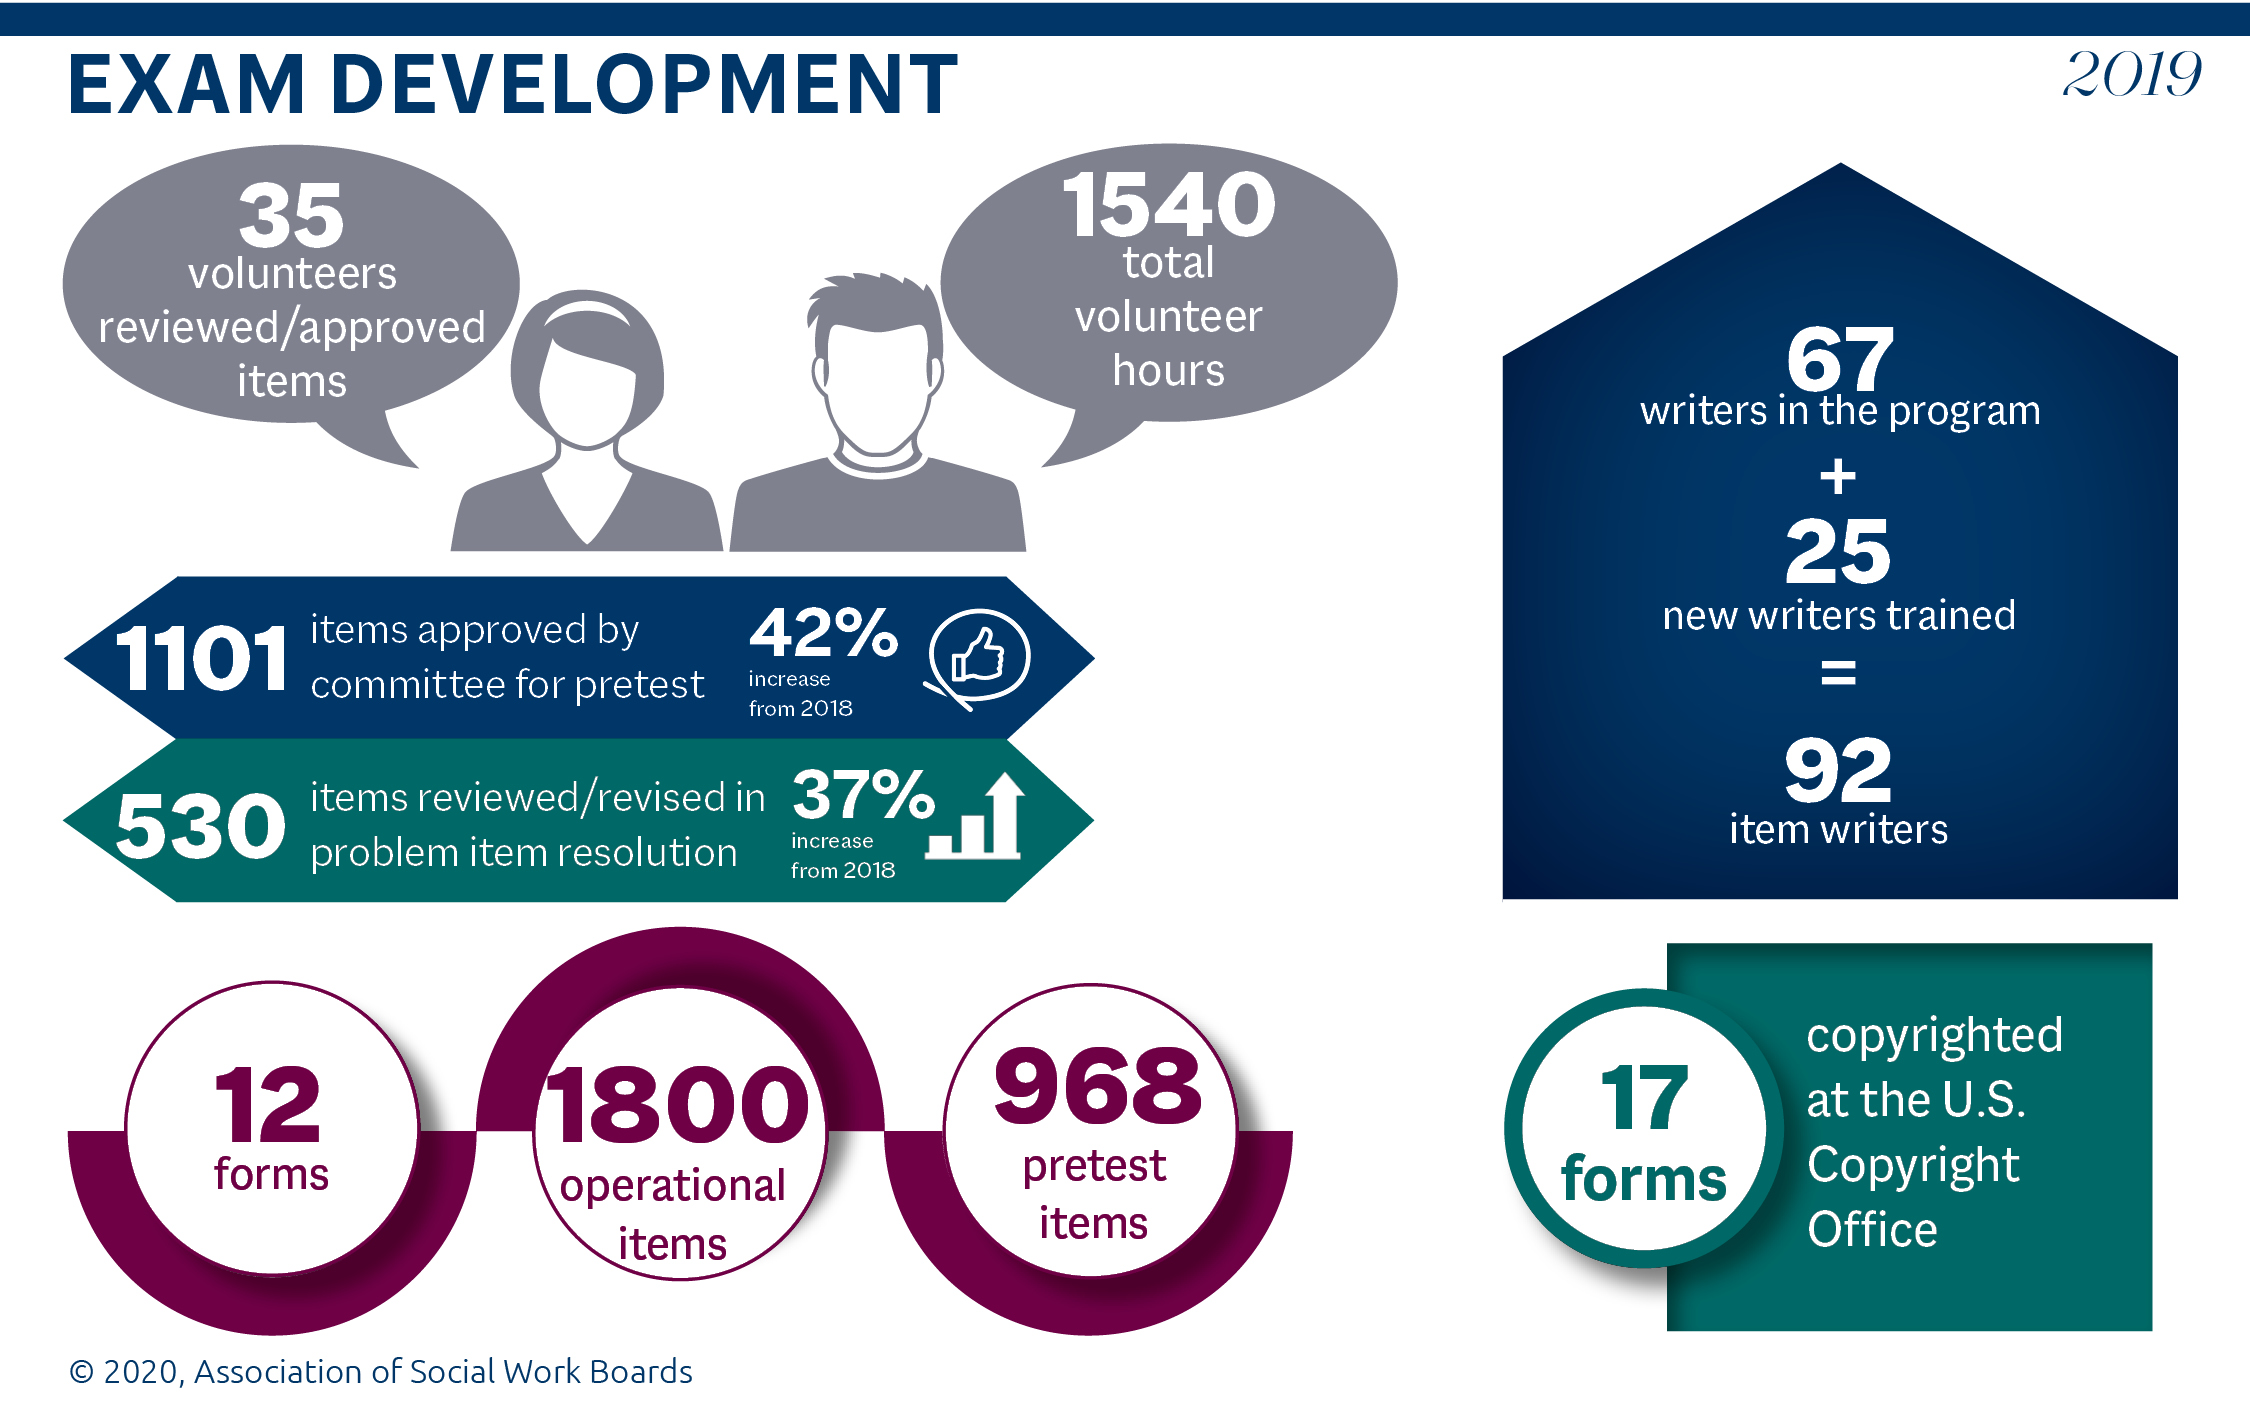 Graphic showing the following statistics for ASWB exam development: 35 volunteers reviewed or approved items; 1540 total volunteer hours; 1101 items approved by committee for pretest (42% increase over 2018); 530 items reviewed or revised in problem items resolution (37% increase over 2018); 12 exam forms; 1800 operational items; 968 pretest items; 67 established item writers; 25 new item writers trained for a total of 92 item writers; 17 exam forms are copyrighted at the U.S. Copyright Office